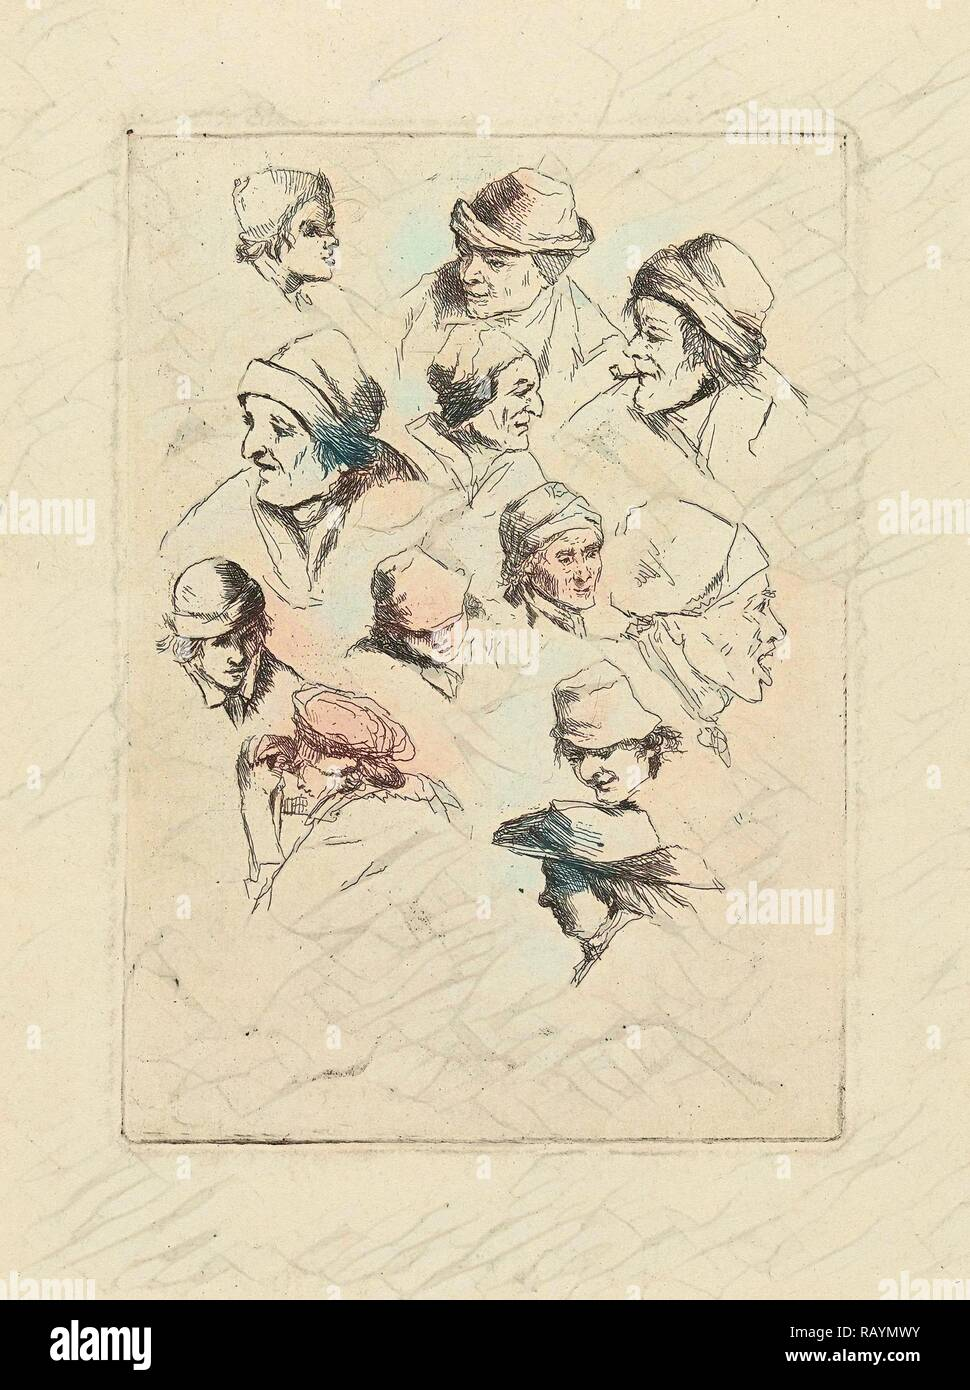 Study Sheet with twelve heads, print maker: Marie Lambertine Coclers, 1776 - 1815. Reimagined by Gibon. Classic art reimagined - Stock Image